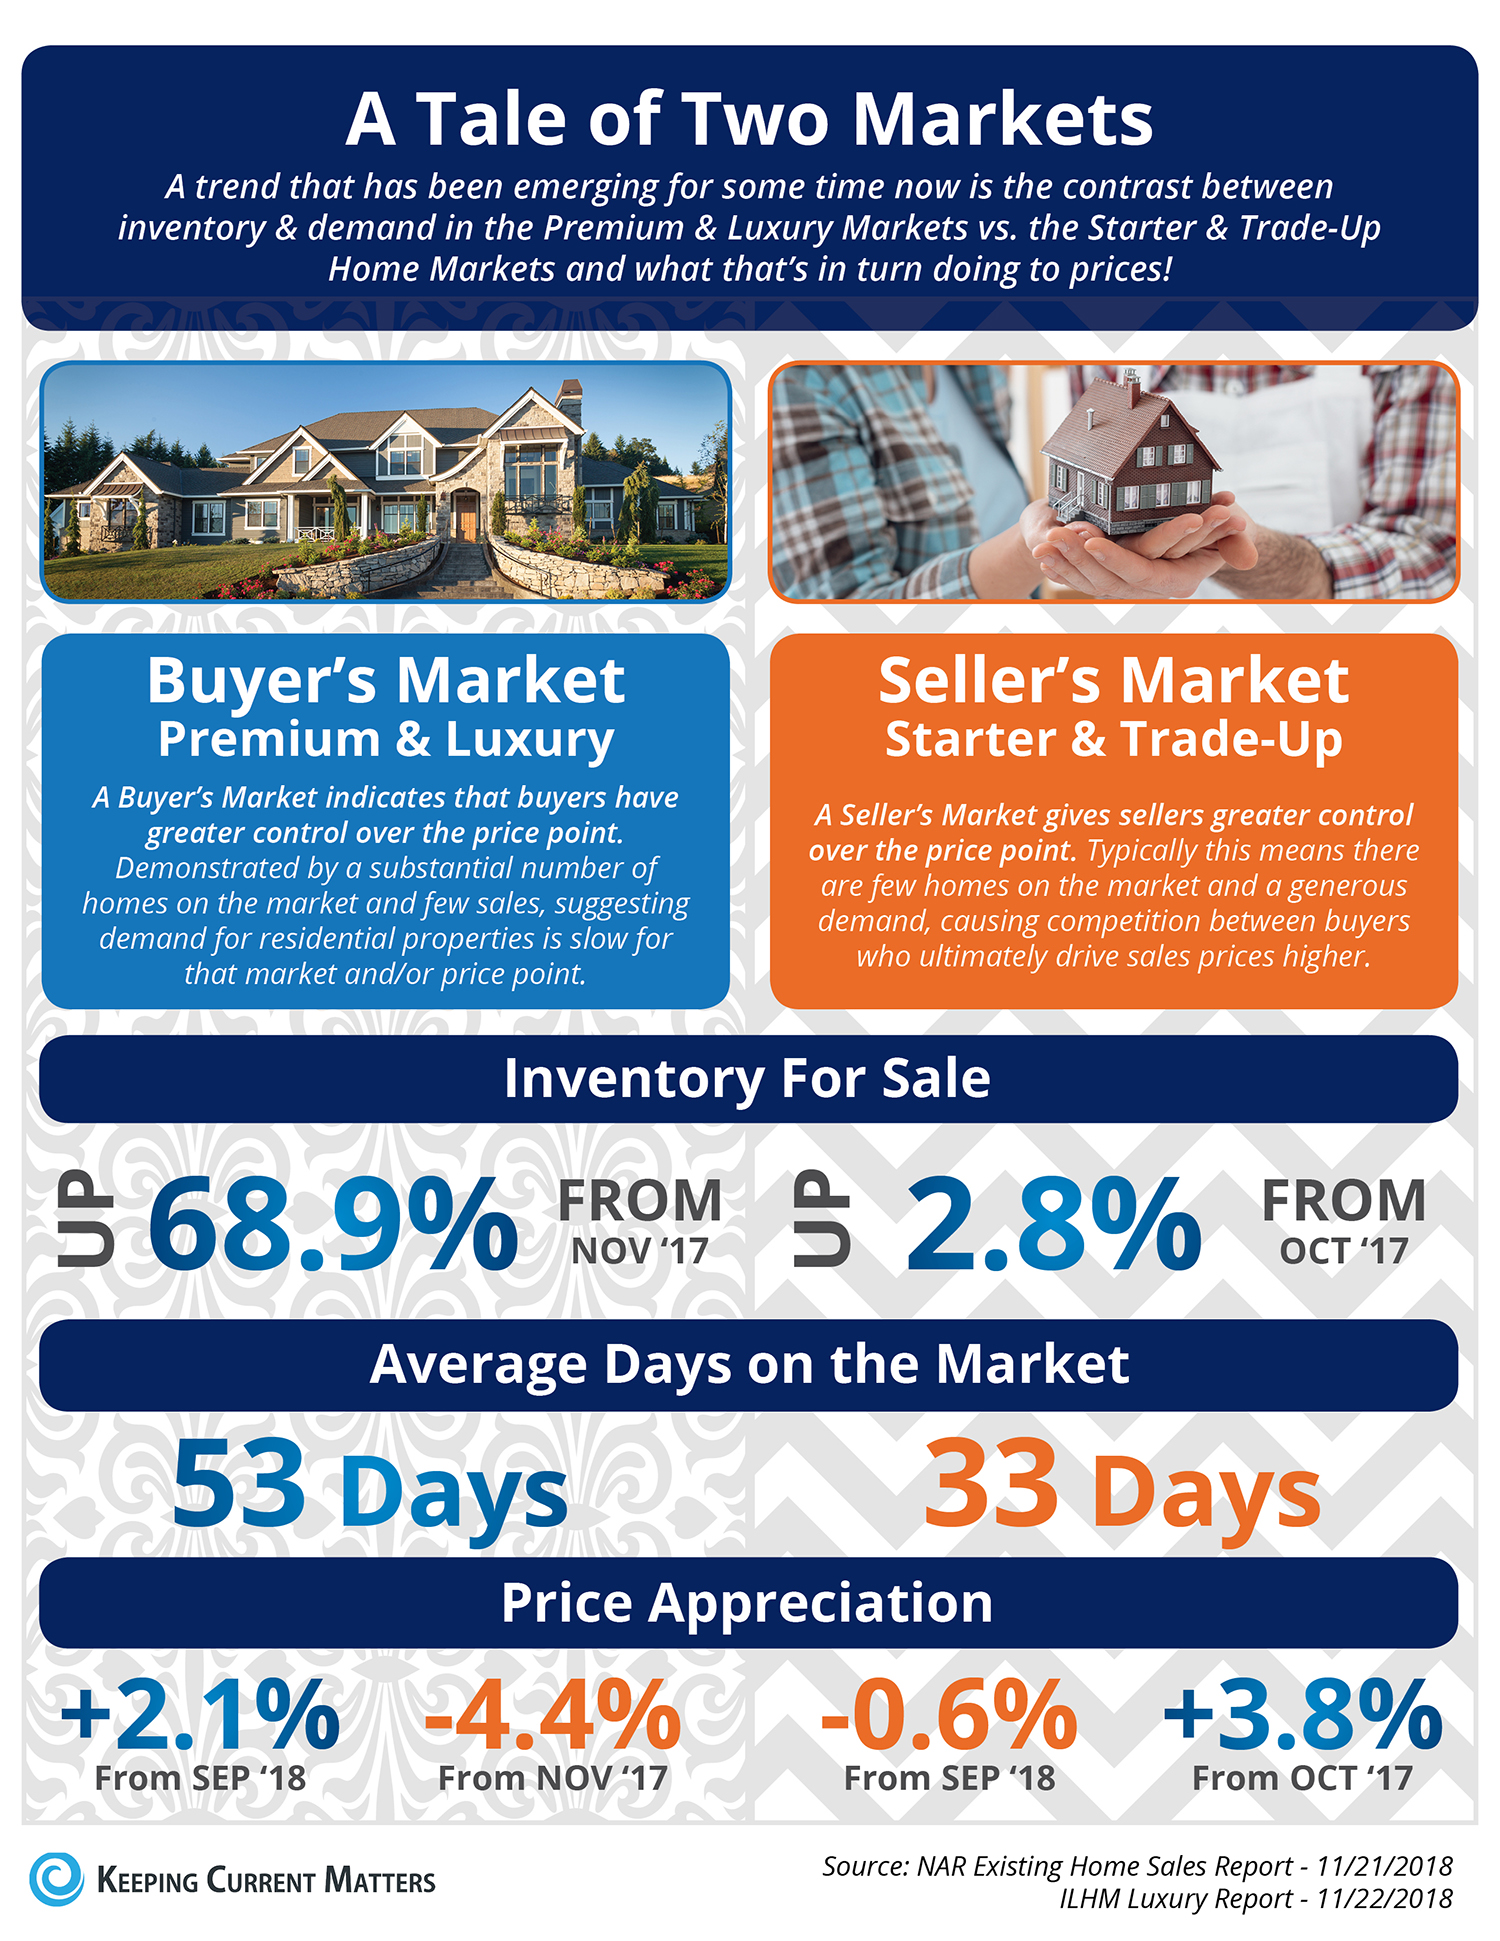 The Tale of Two Markets [INFOGRAPHIC] | Keeping Current Matters